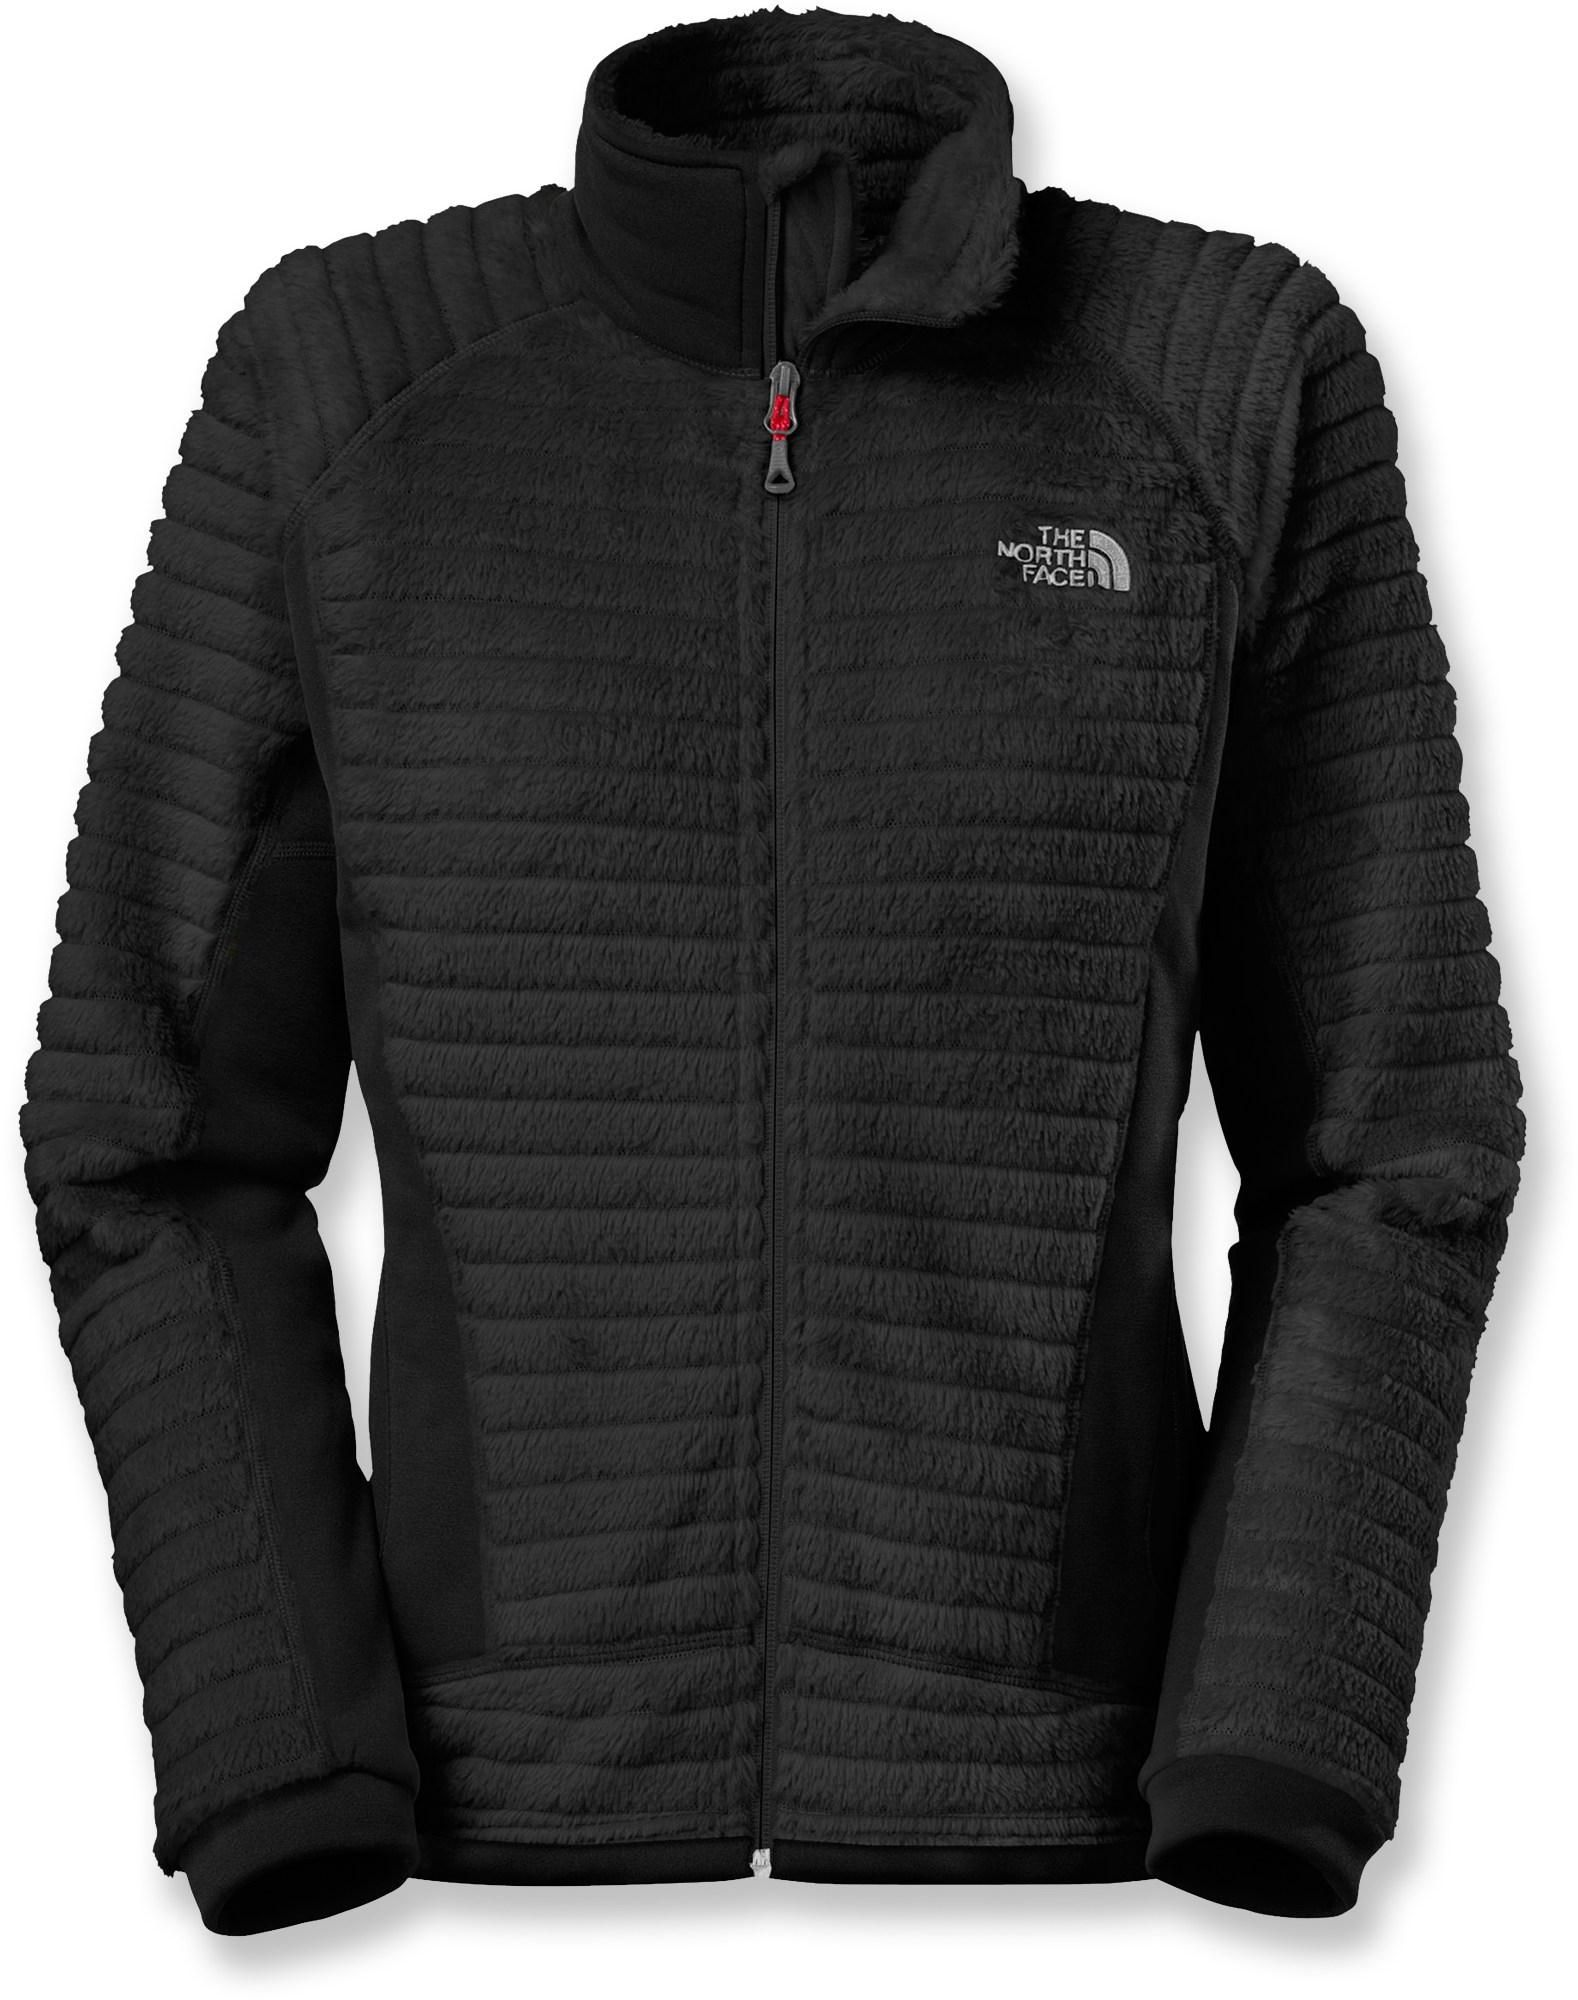 320cd8afe The North Face Radium High-Loft fleece jacket provides lightweight ...